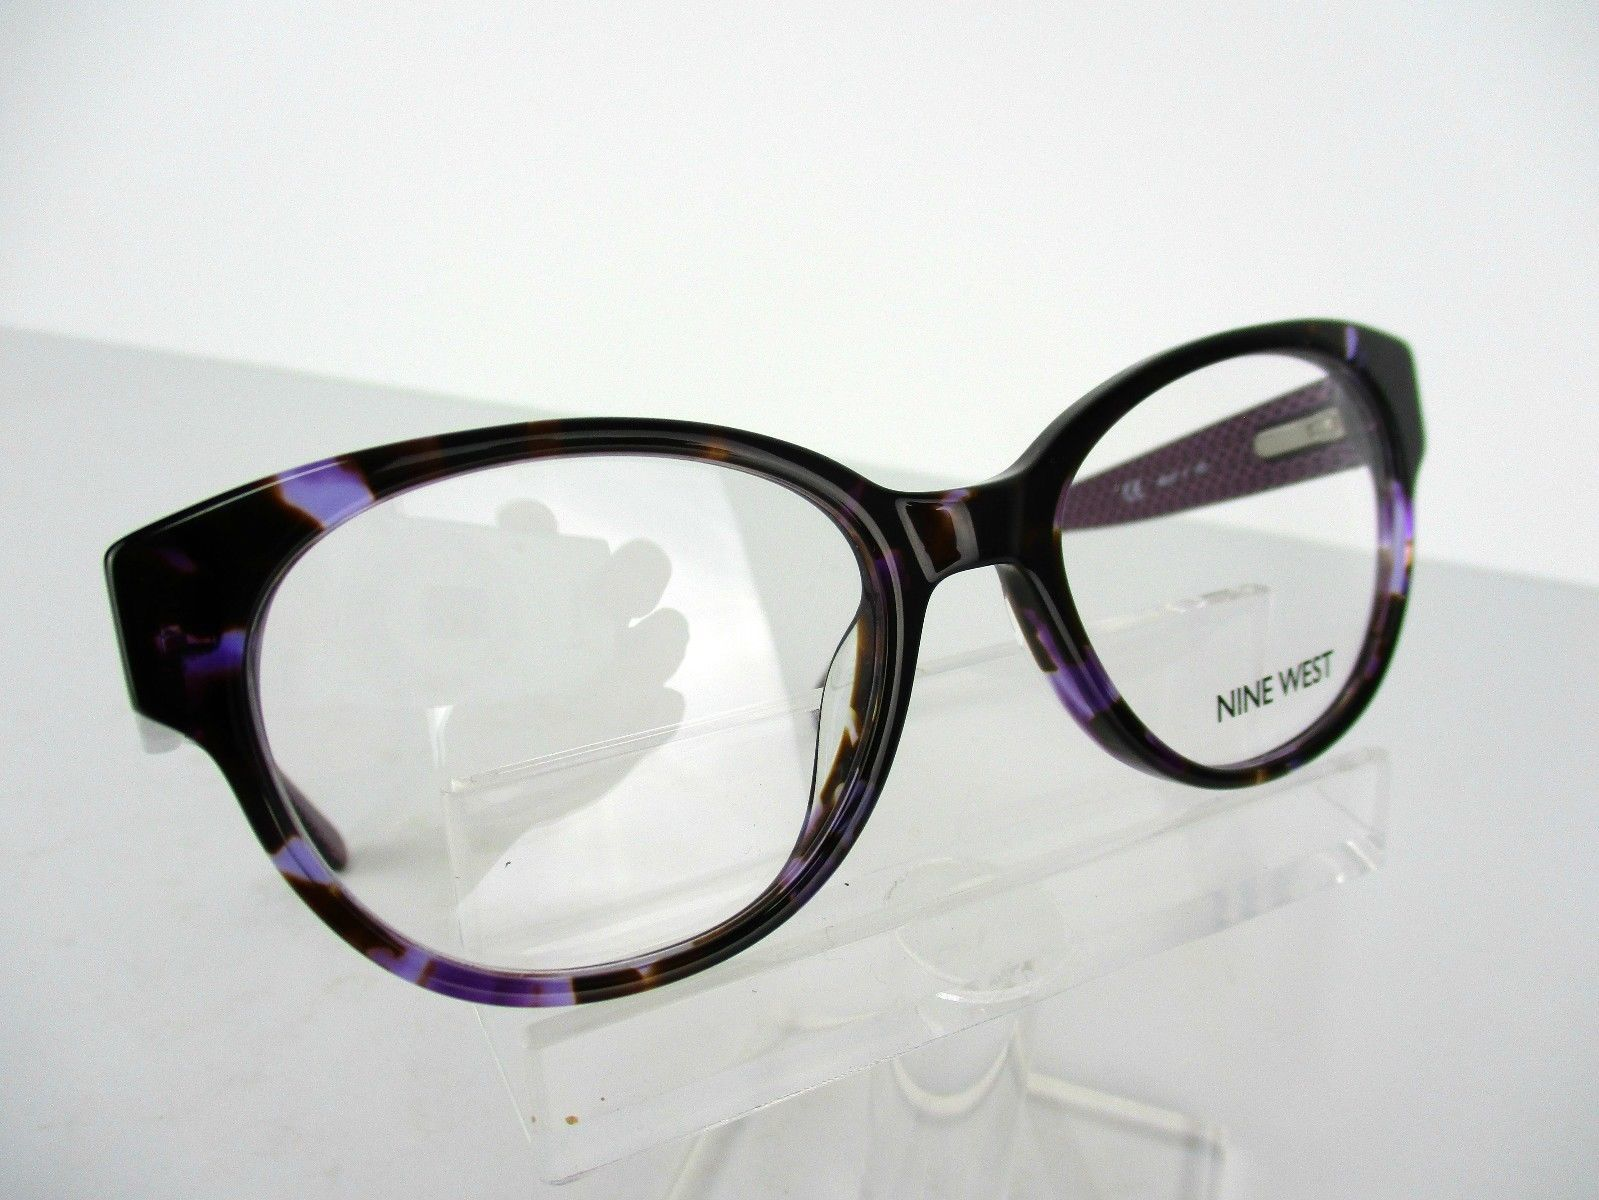 Primary image for Nine West NW 5079 (518) Purple Tortoise  48 x 17 135 mm Eyeglass Frame